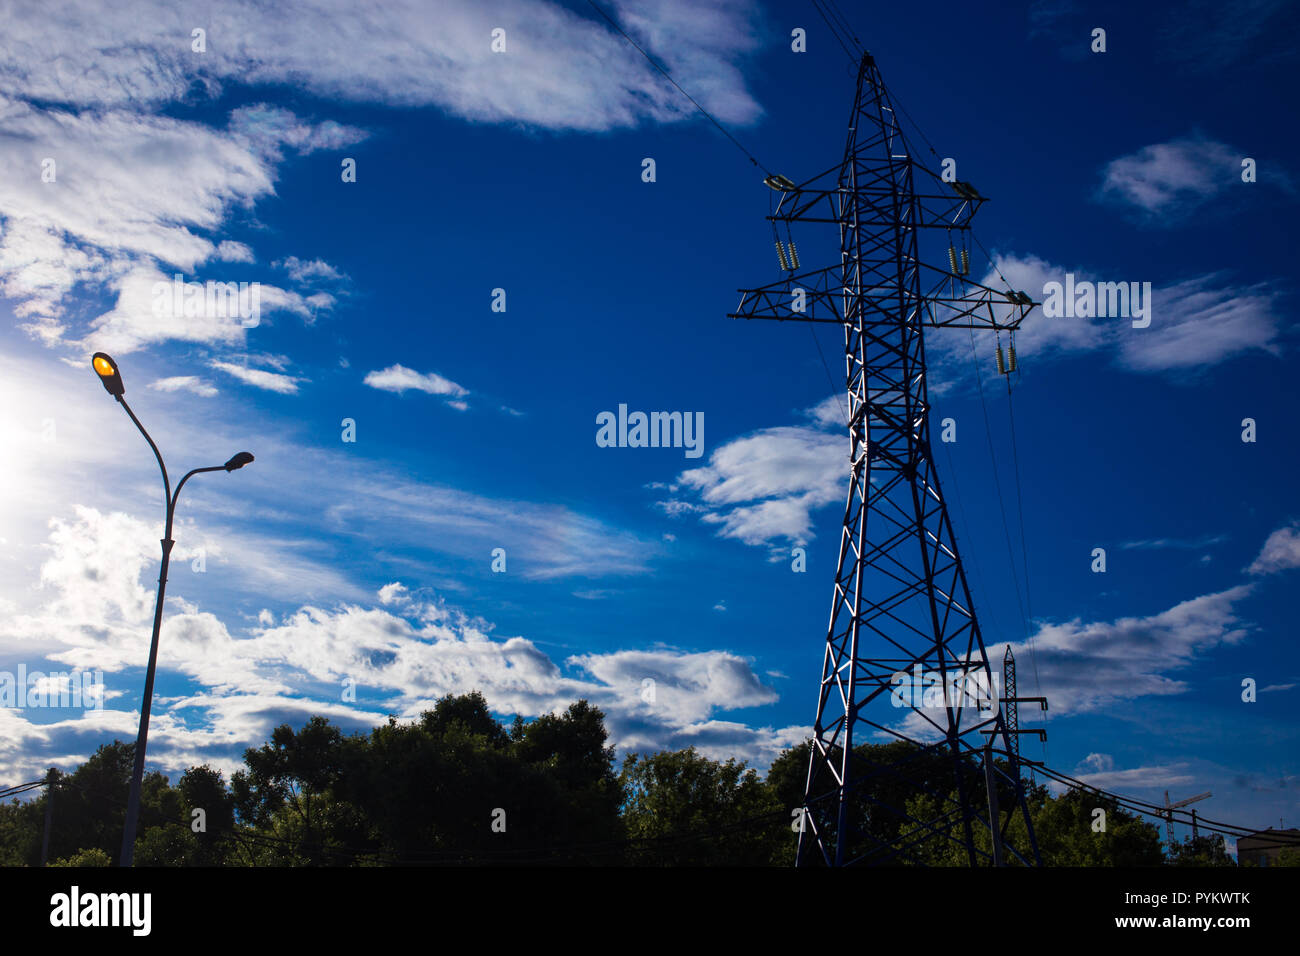 bottom view of the tower of power grids on blue sky background, High voltage, Electricity concept Stock Photo